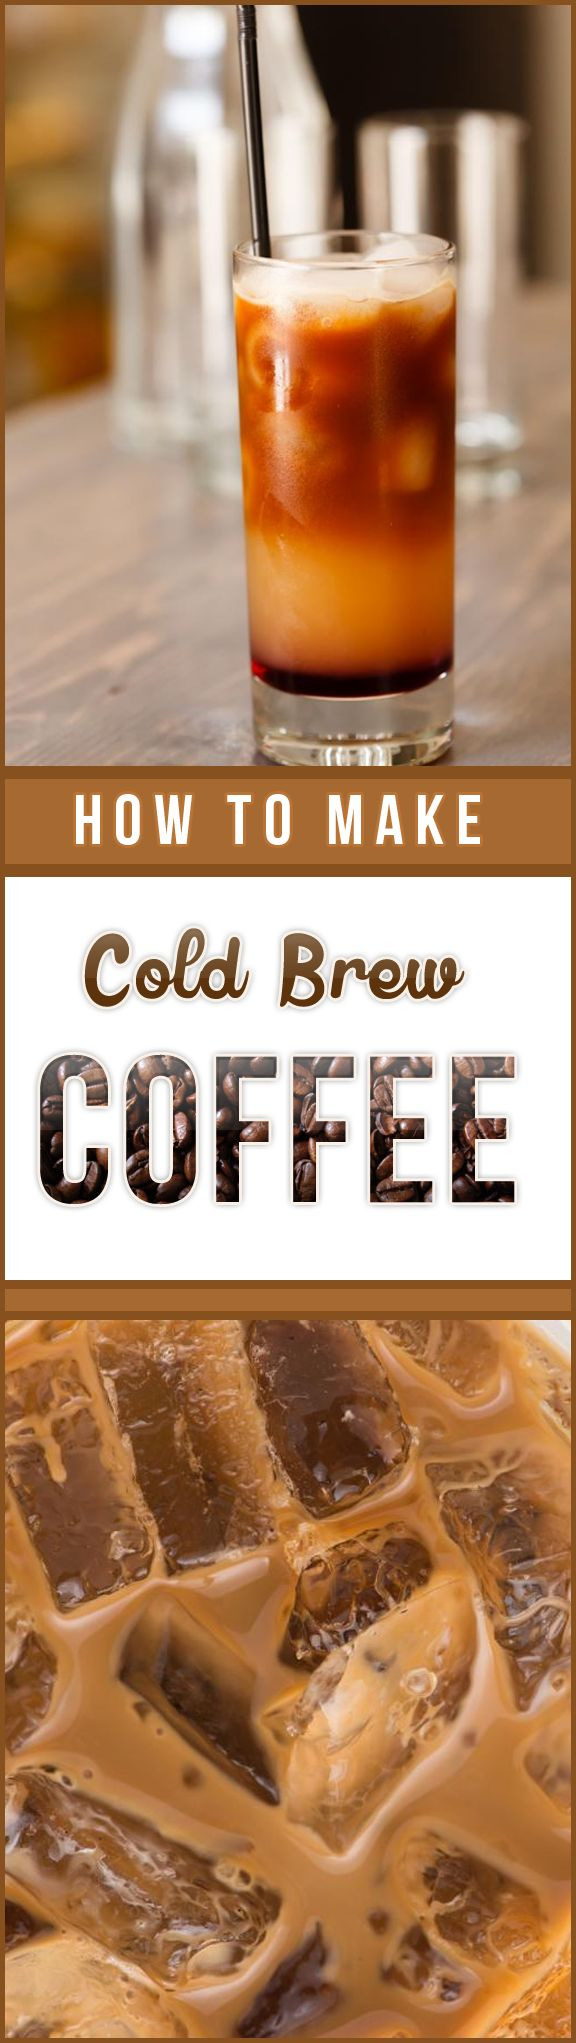 Learn how to make cold brew coffee with this step-by-step tutorial and ...